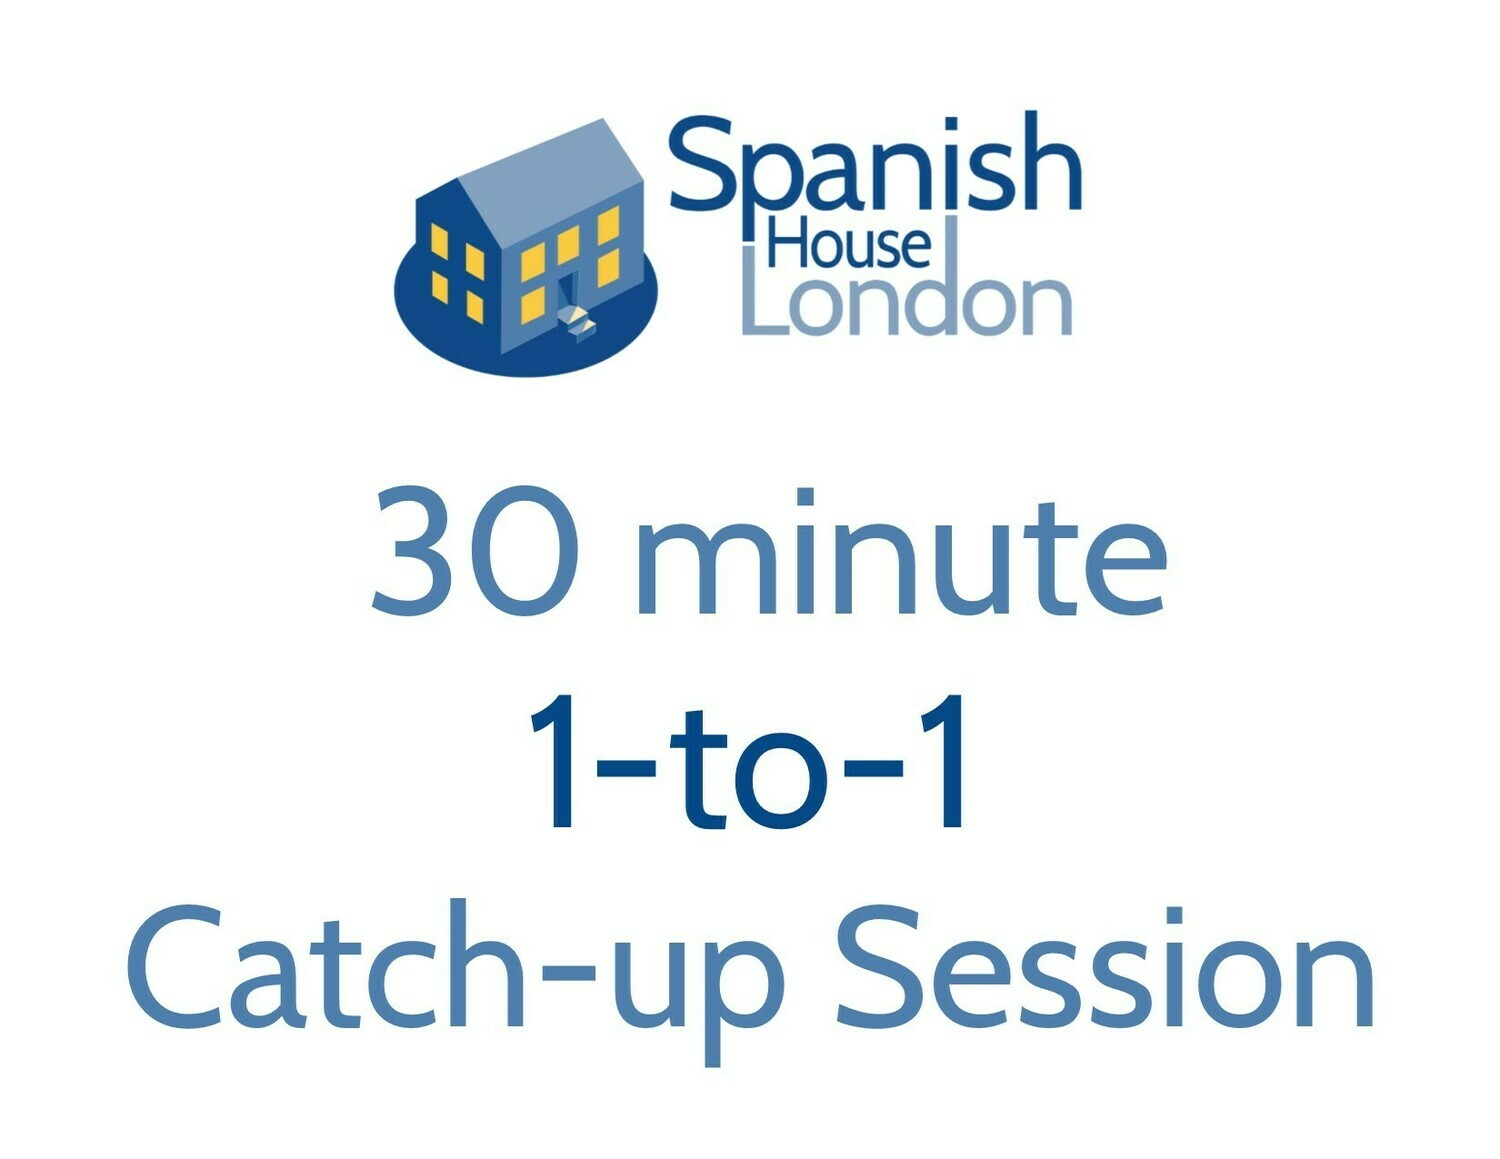 30 minute 1-to-1 catch-up lesson